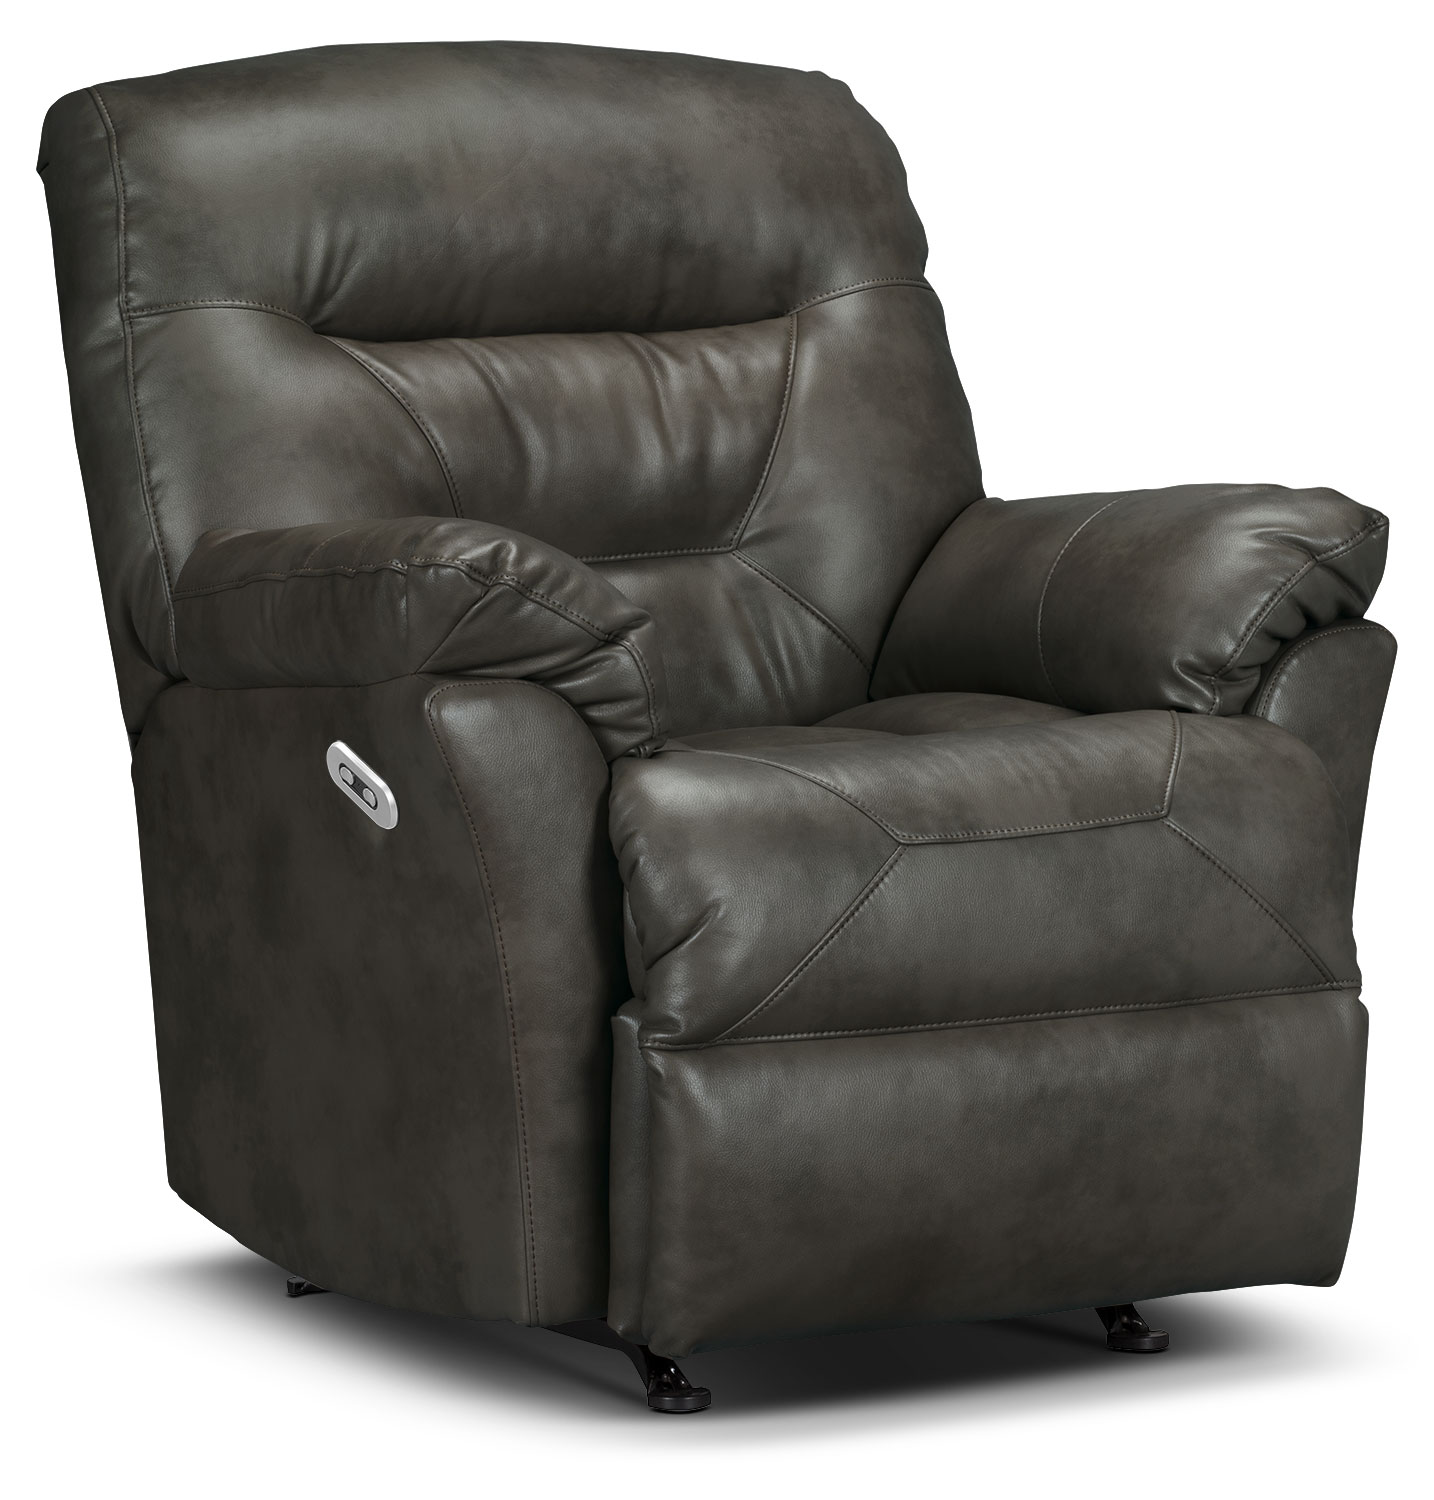 Living Room Furniture - Designed2B Recliner 4579 Leather-Look Fabric Power Recliner - Seal